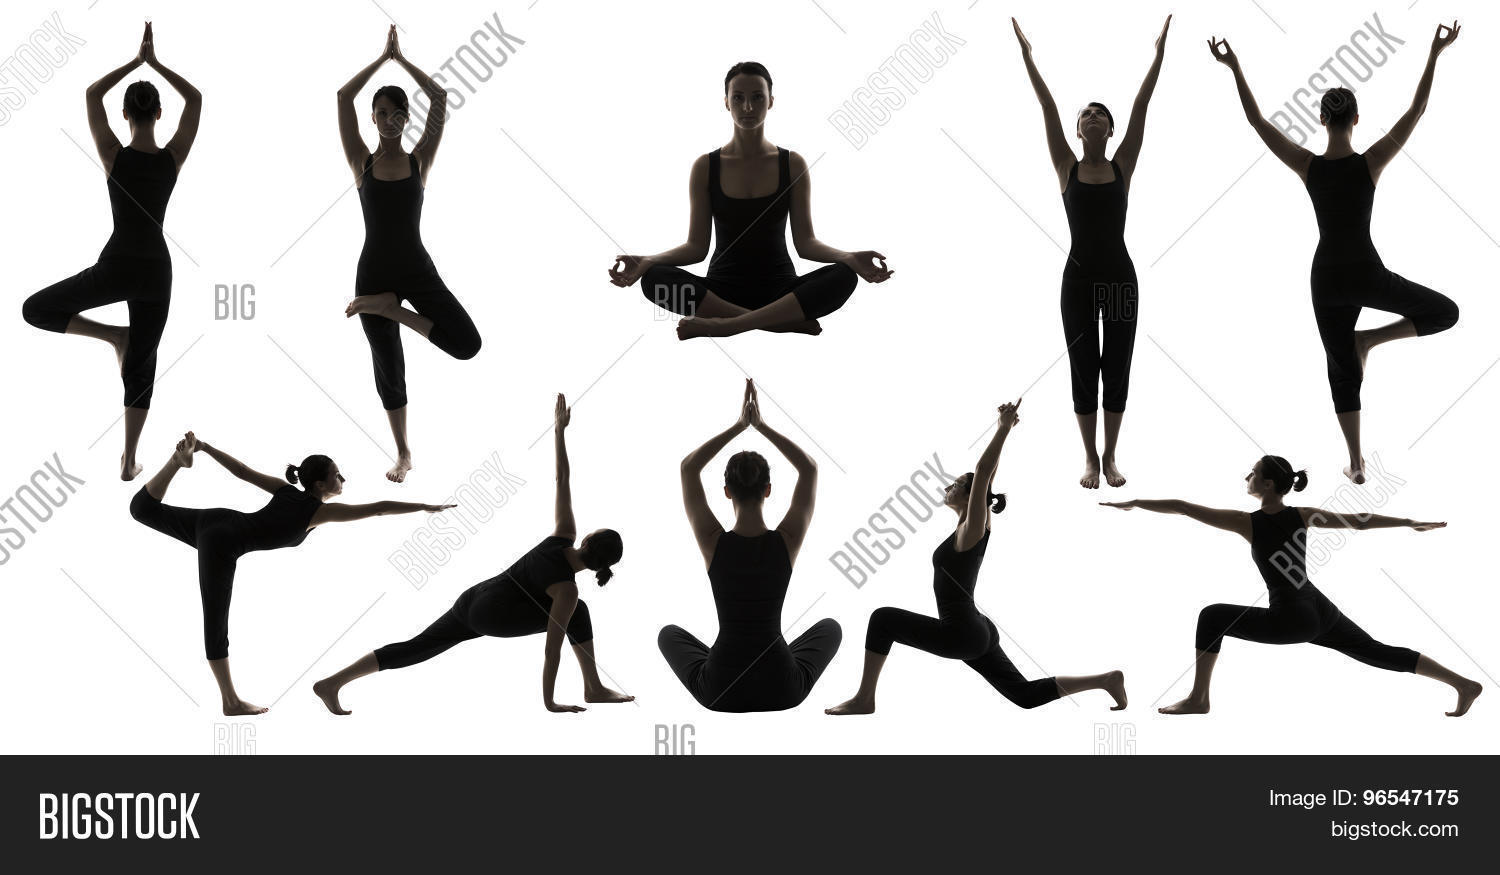 activity,asana,background,black,body,care,collection,cutout,doing,exercise,exercising,female,figure,fit,fitness,flexible,girl,group,group exercise,gym,gymnast,gymnastics,health,healthy,isolated,joga,lotus,man,meditate,meditating,meditation,model,people,poses,posing,position,practicing,recreation,set,silhouette,silhouette woman,sport,sporty,stretch,training,wellbeing,white,woman,woman silhouette,workout,yoga,yoga man,yoga pose,yoga poses,yoga silhouette,yoga woman,zen